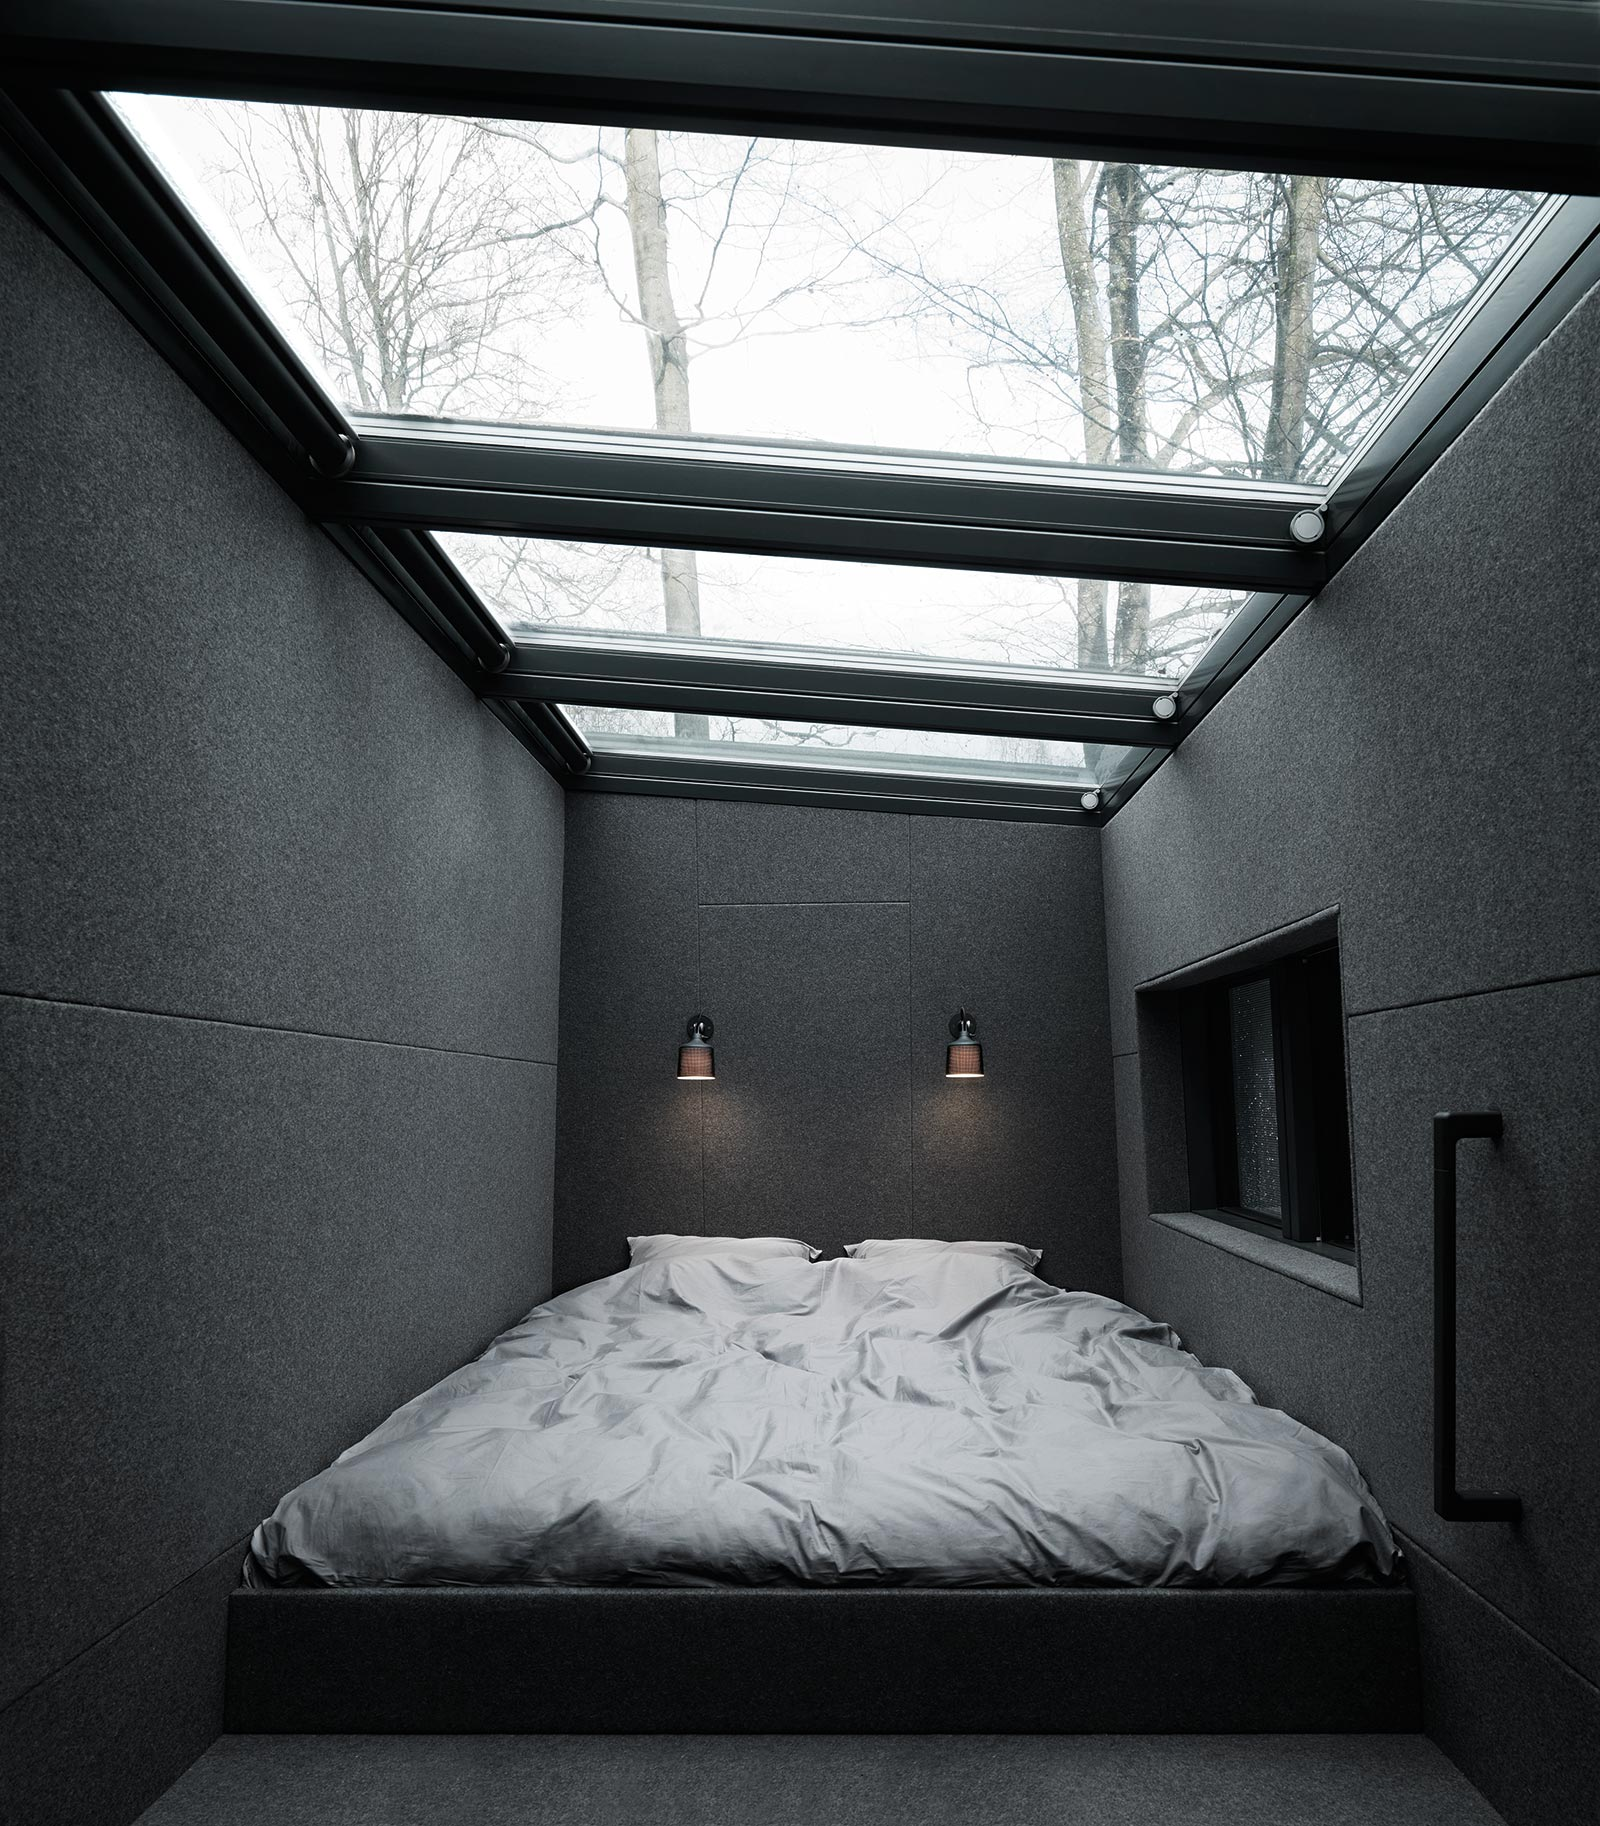 vipps-plug-and-play-getaway-shelter-35